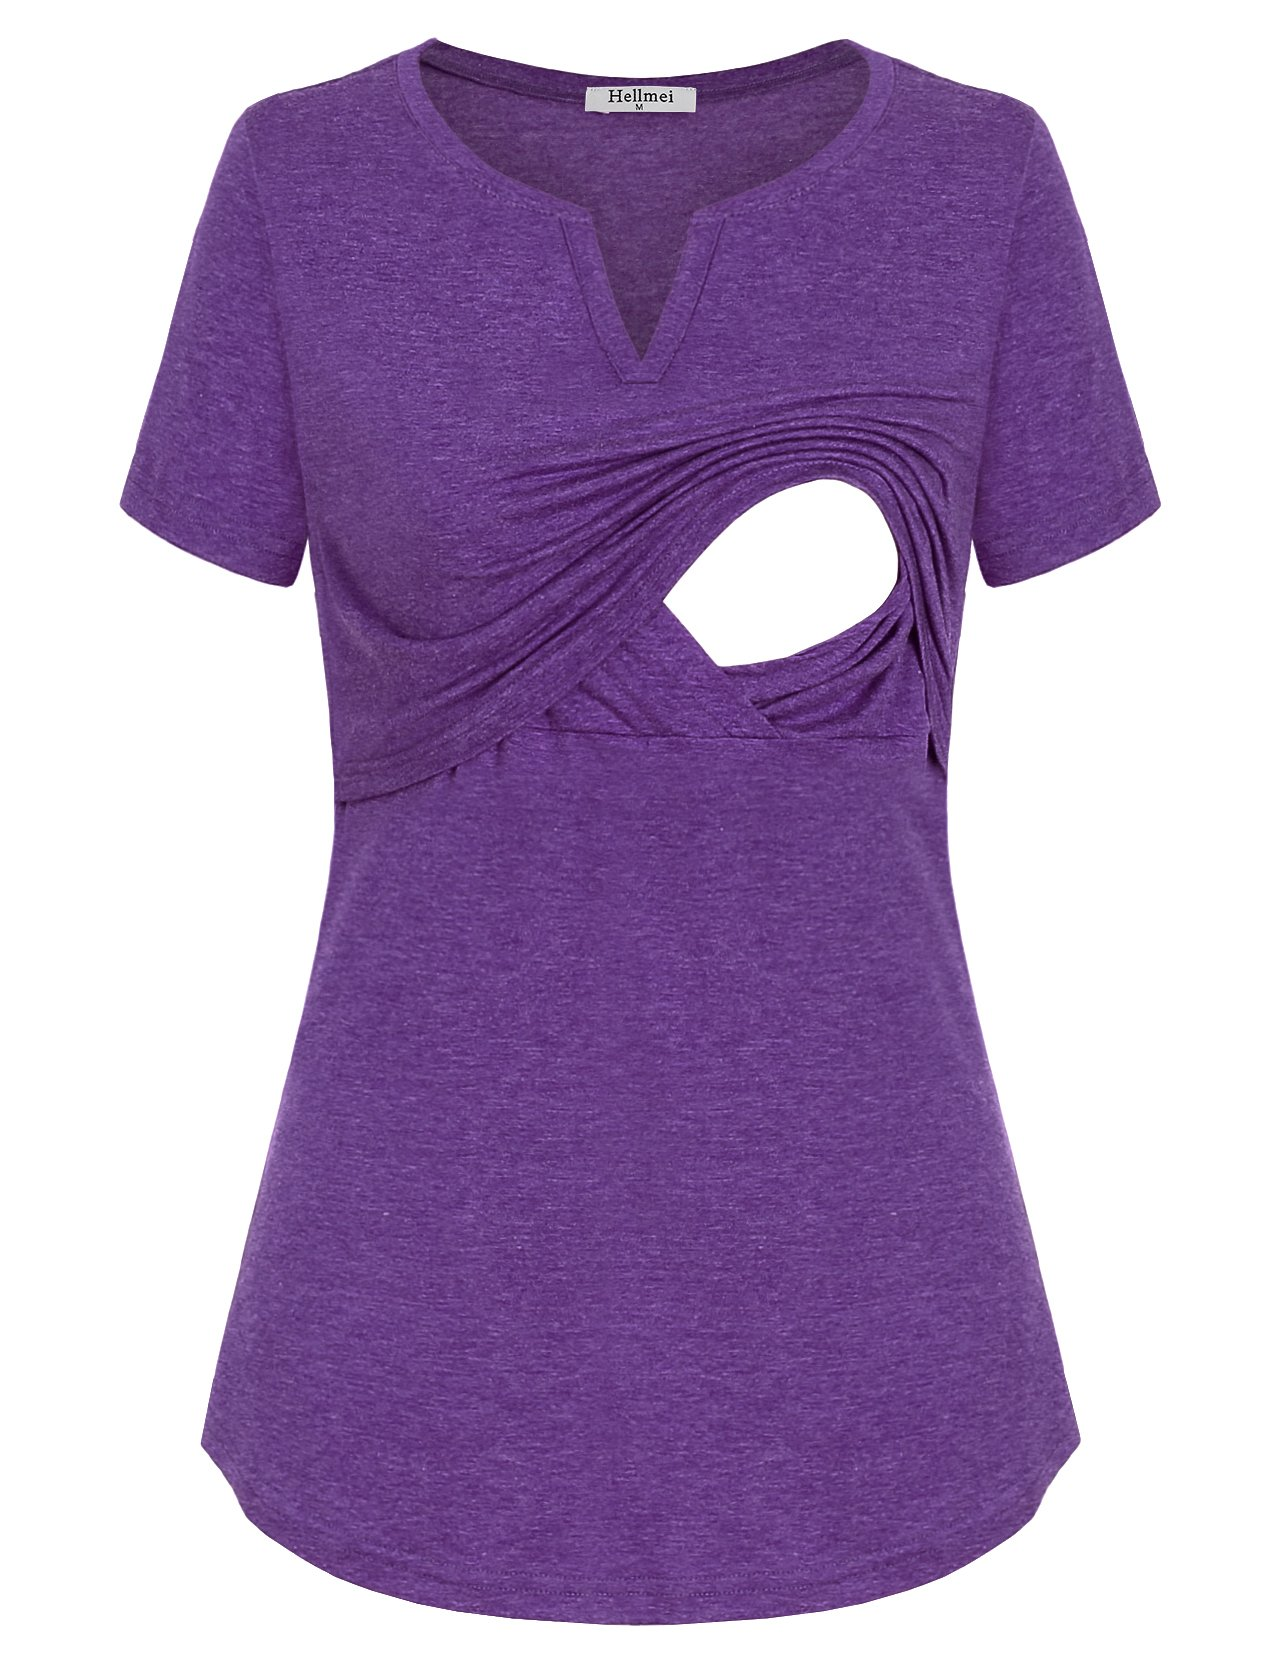 Hellmei Nursing Clothes for Breastfeeding, Short Sleeve Maternity Shirt Tunic Feeding Flattering Cotton Blend Trapeze Double Layered Tops Pregnancy Nursing Outfits for Women Violet Large